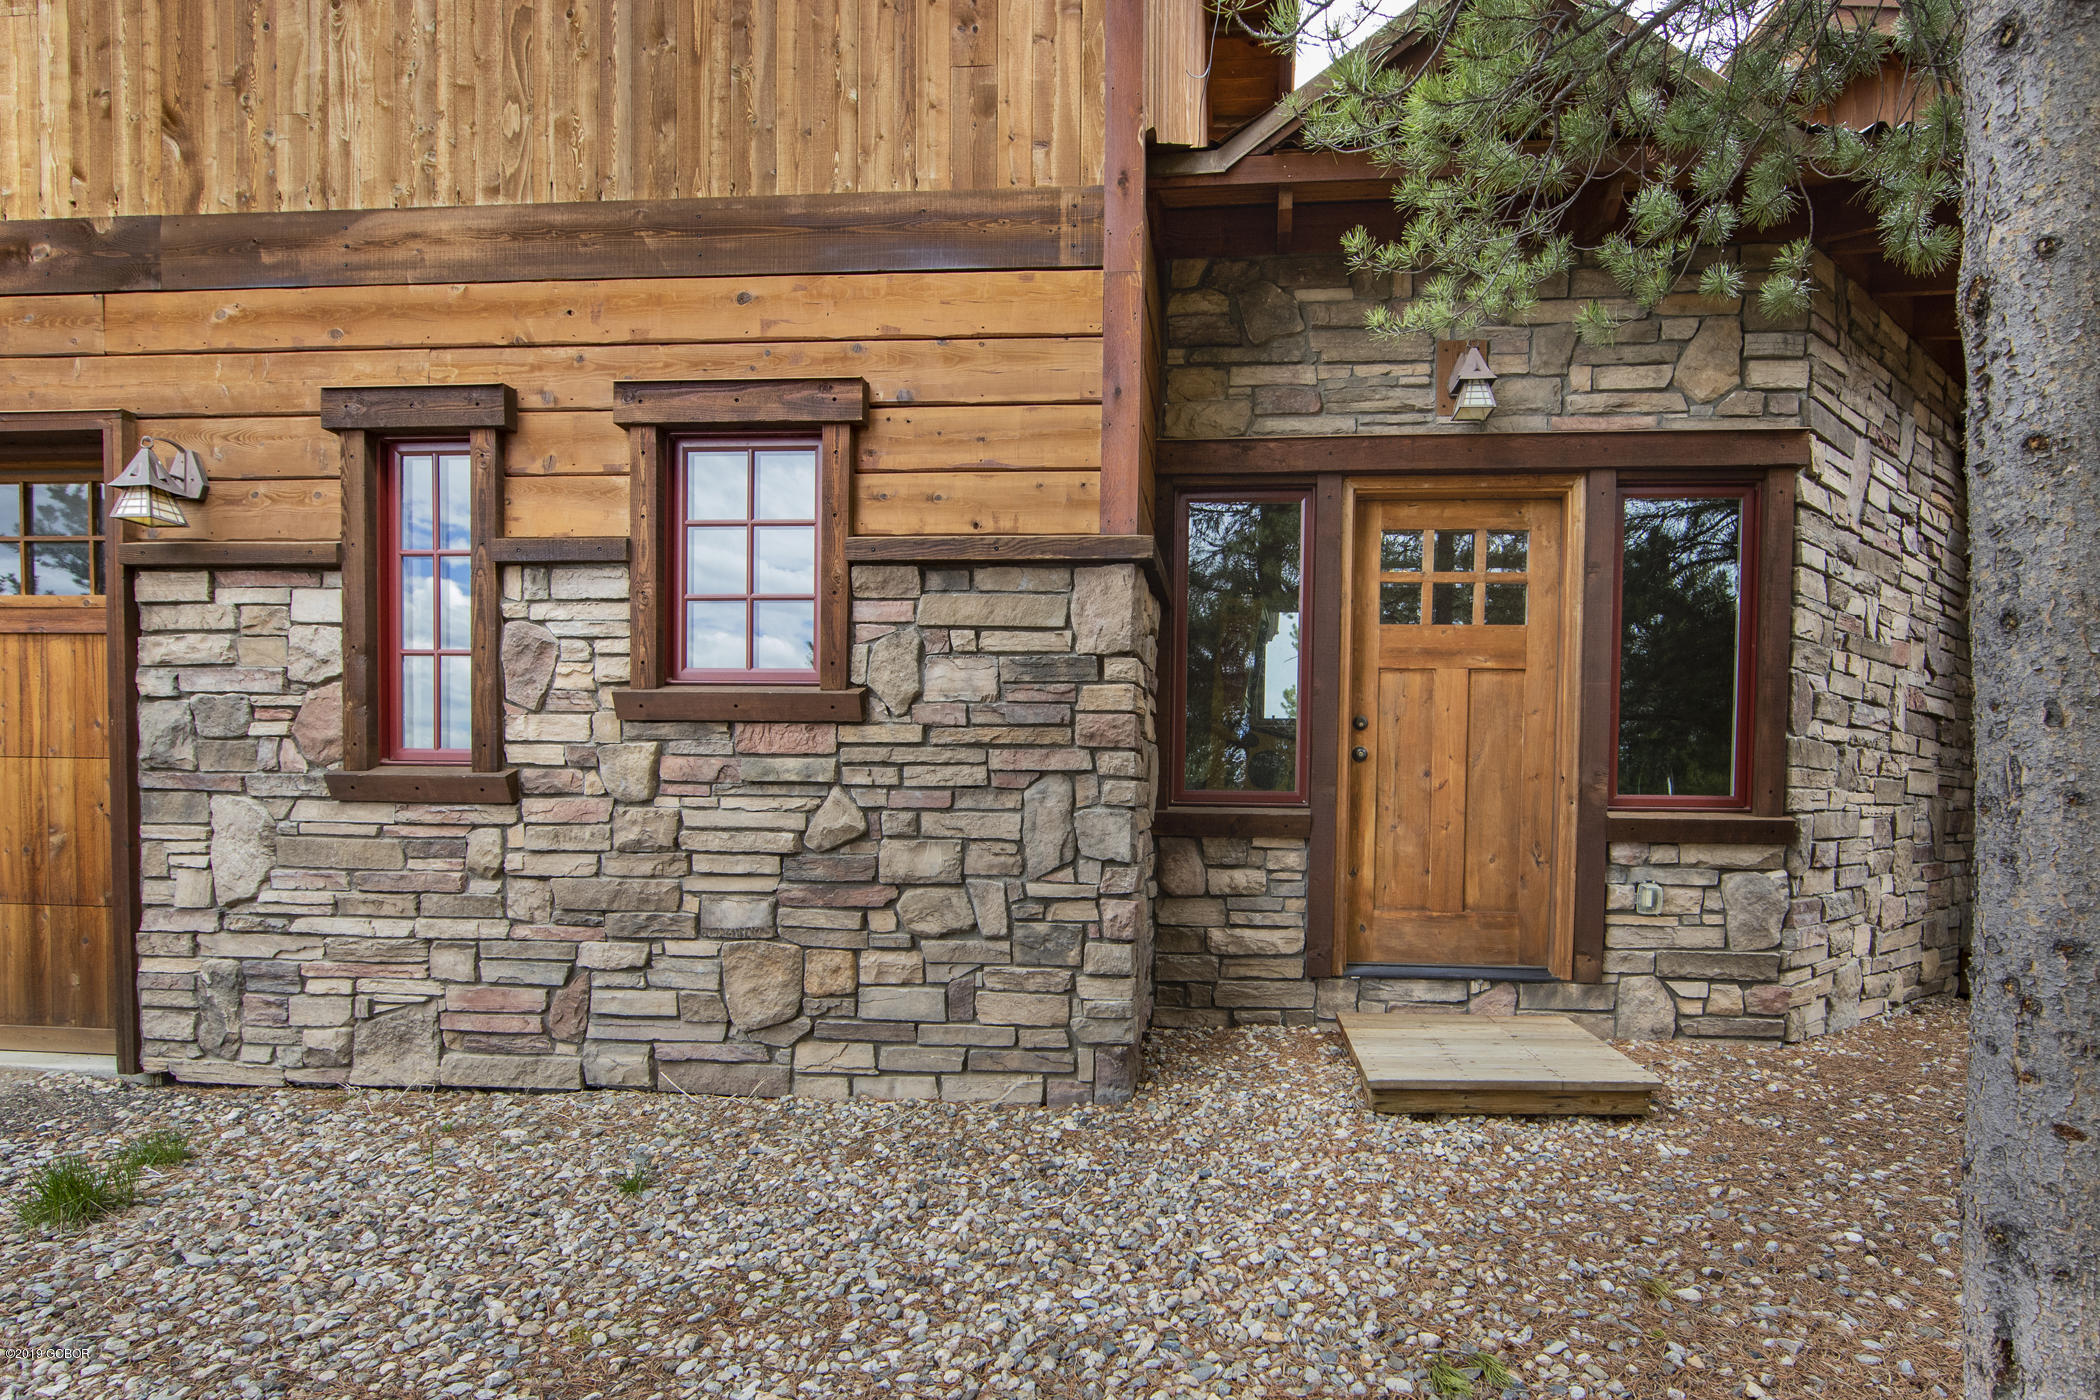 MLS# 19-704 - 7 - 612 County Rd 6237  #, Granby, CO 80446